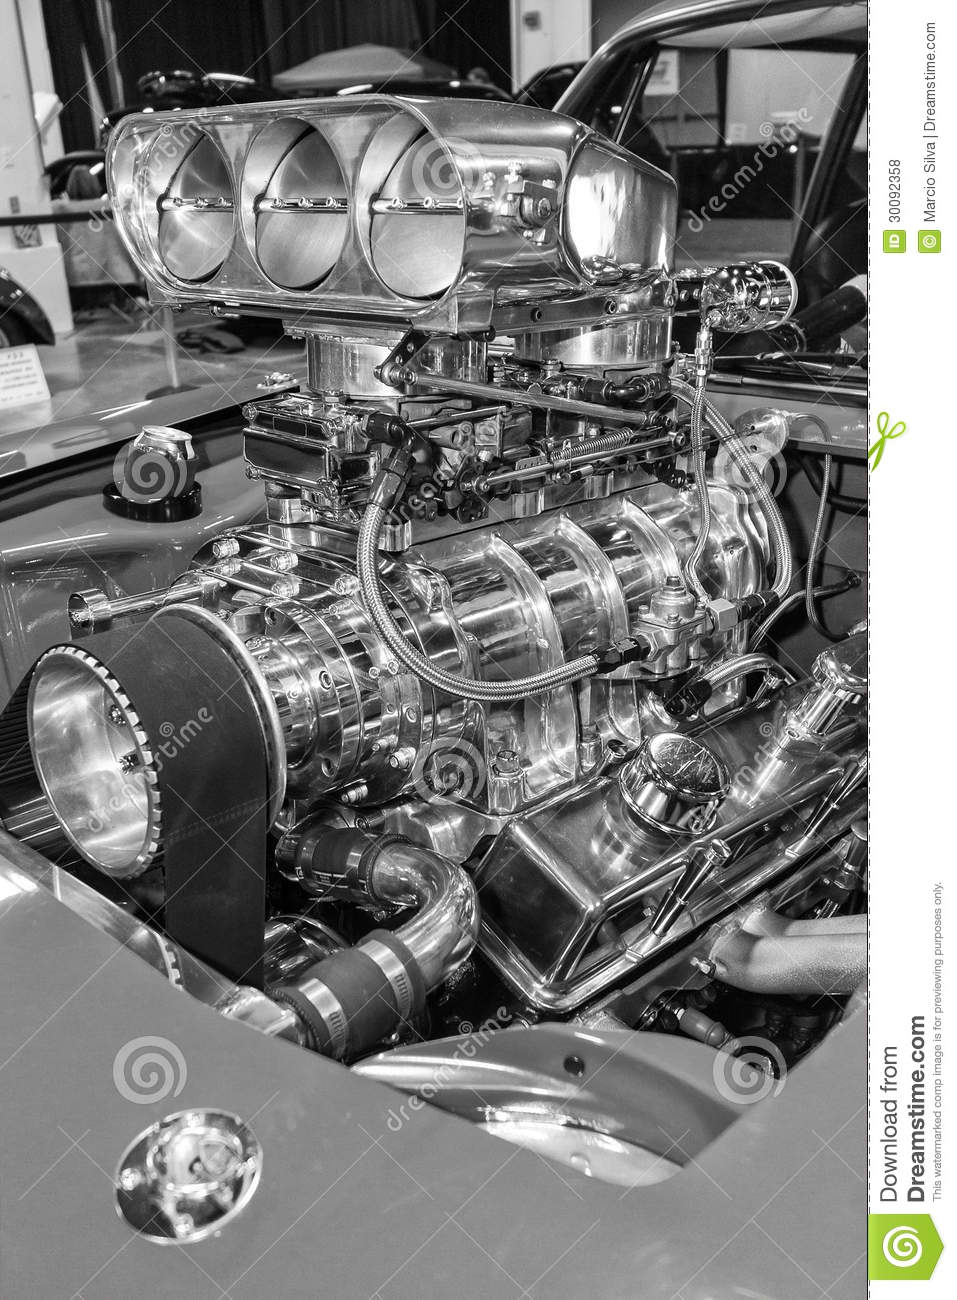 American Muscle Car S Engine Stock Photo Image 30092358